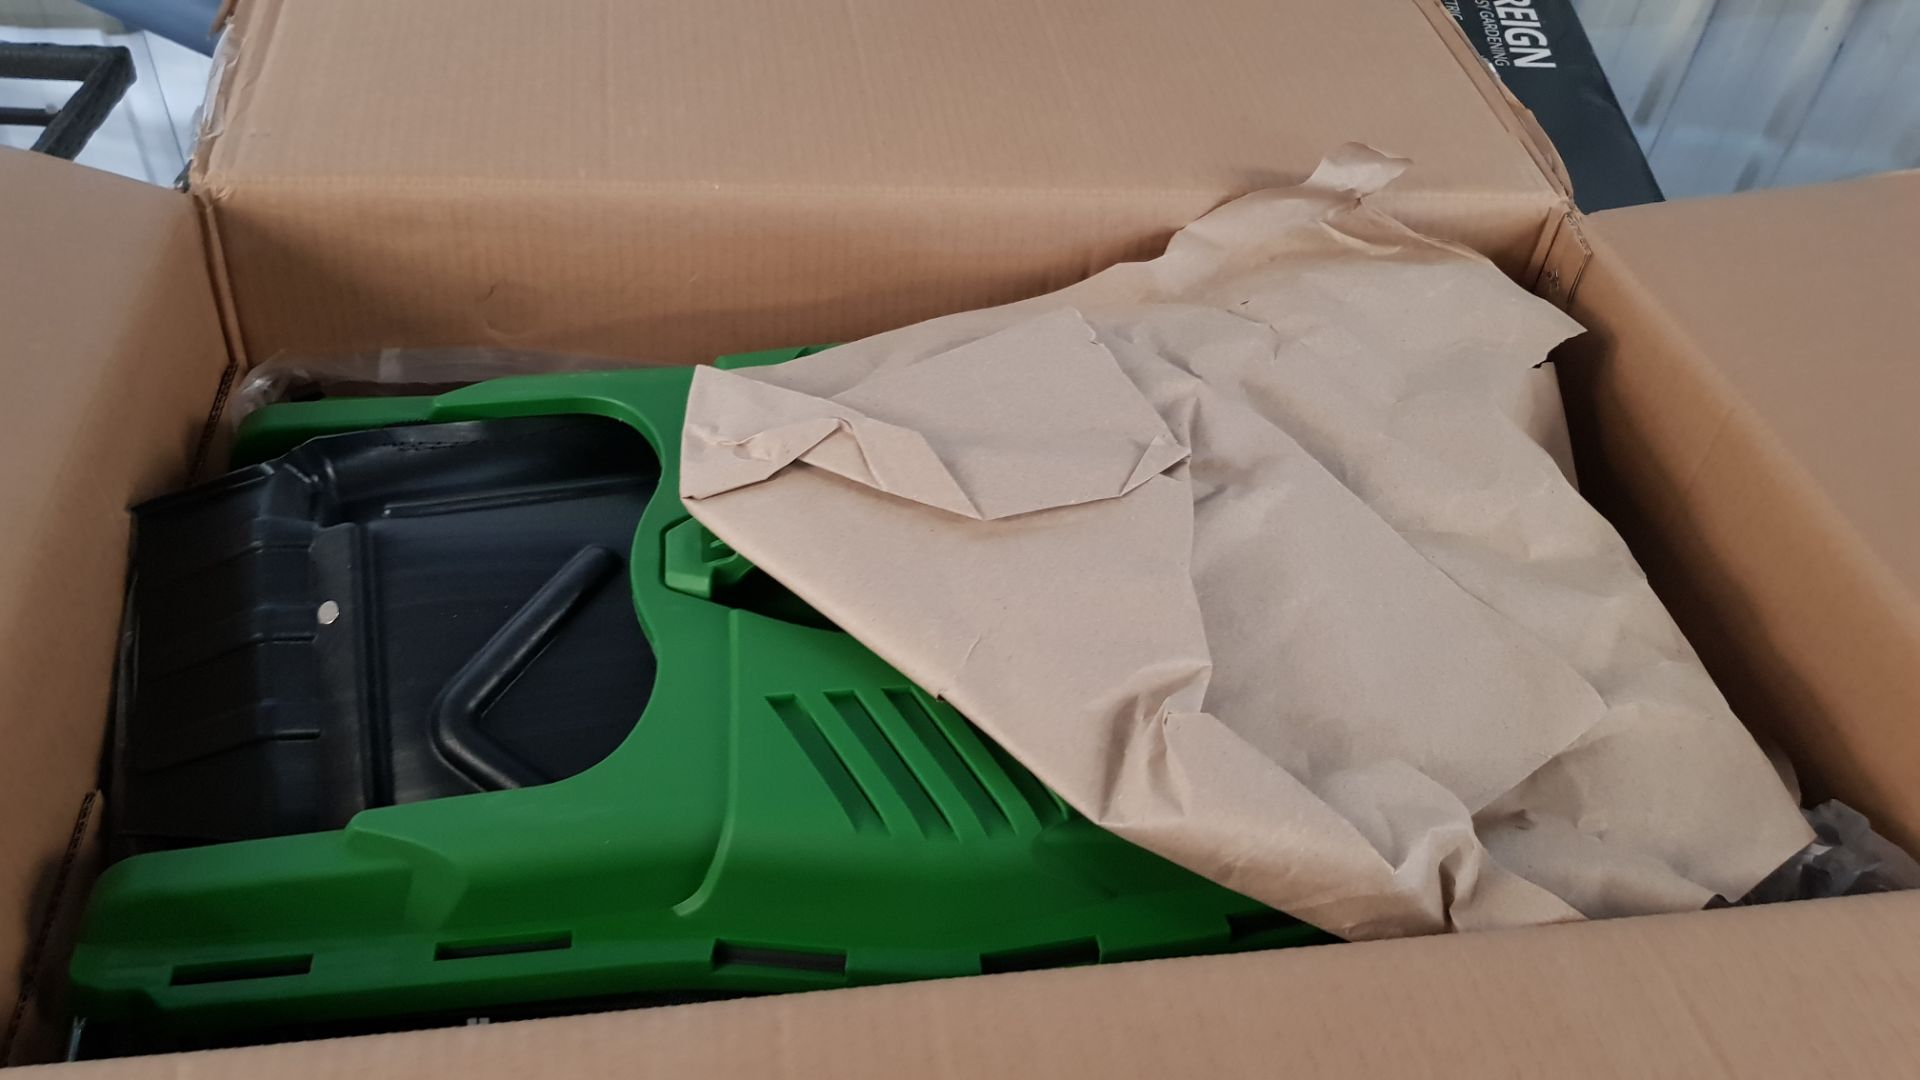 (P9) 1x Powerbase 37cm 40V Cordless Lawn Mower. RRP £199.00. Unit Appears Clean, As New & Unused. - Image 4 of 5